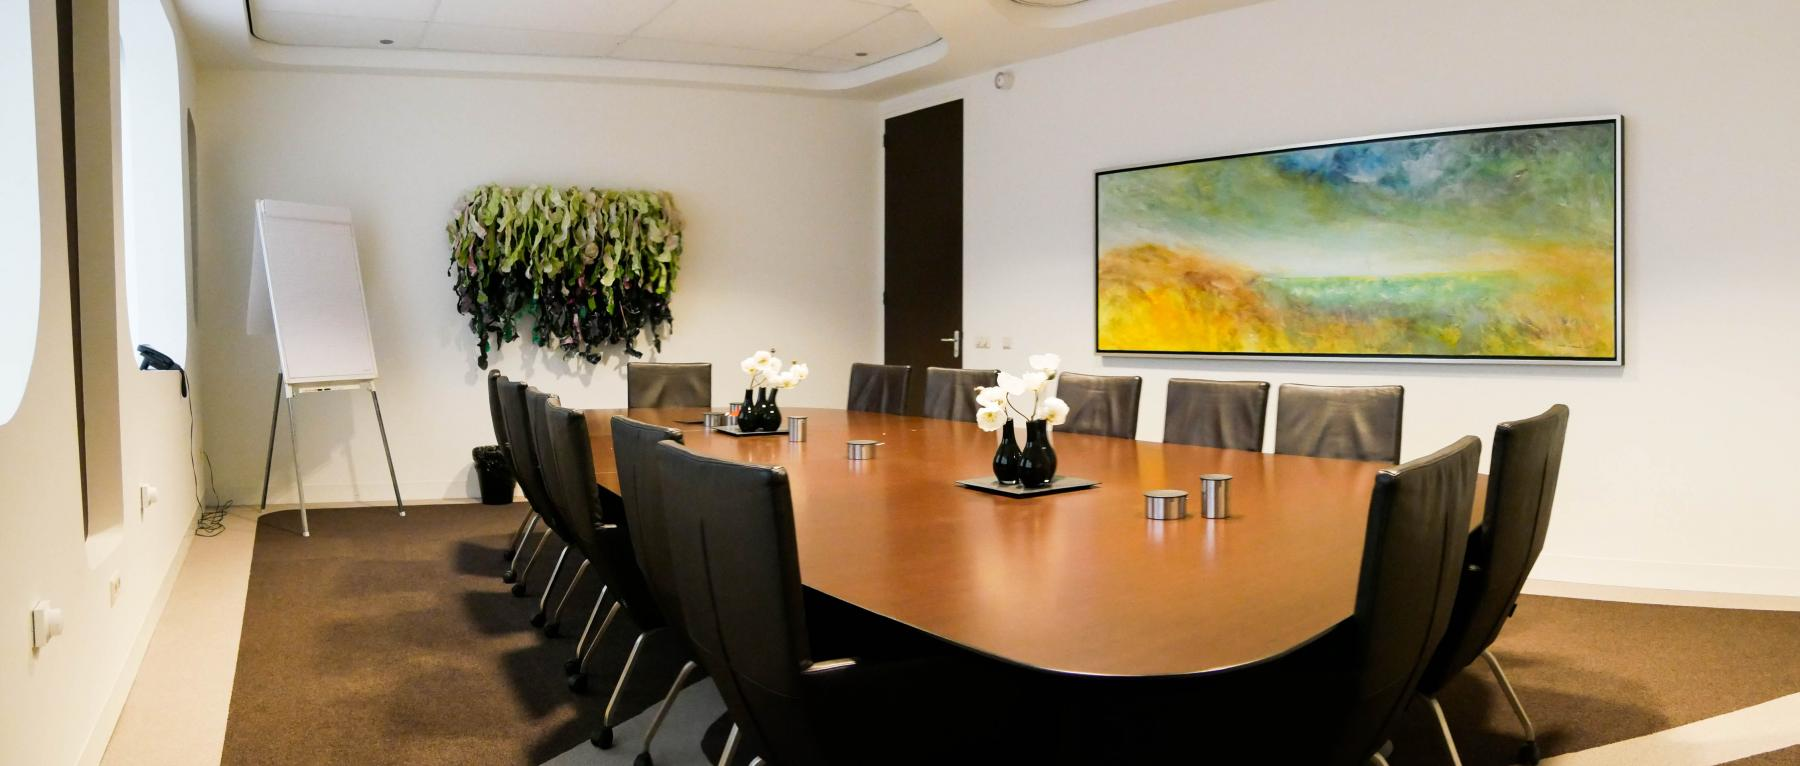 Meeting room in office building with nice painting